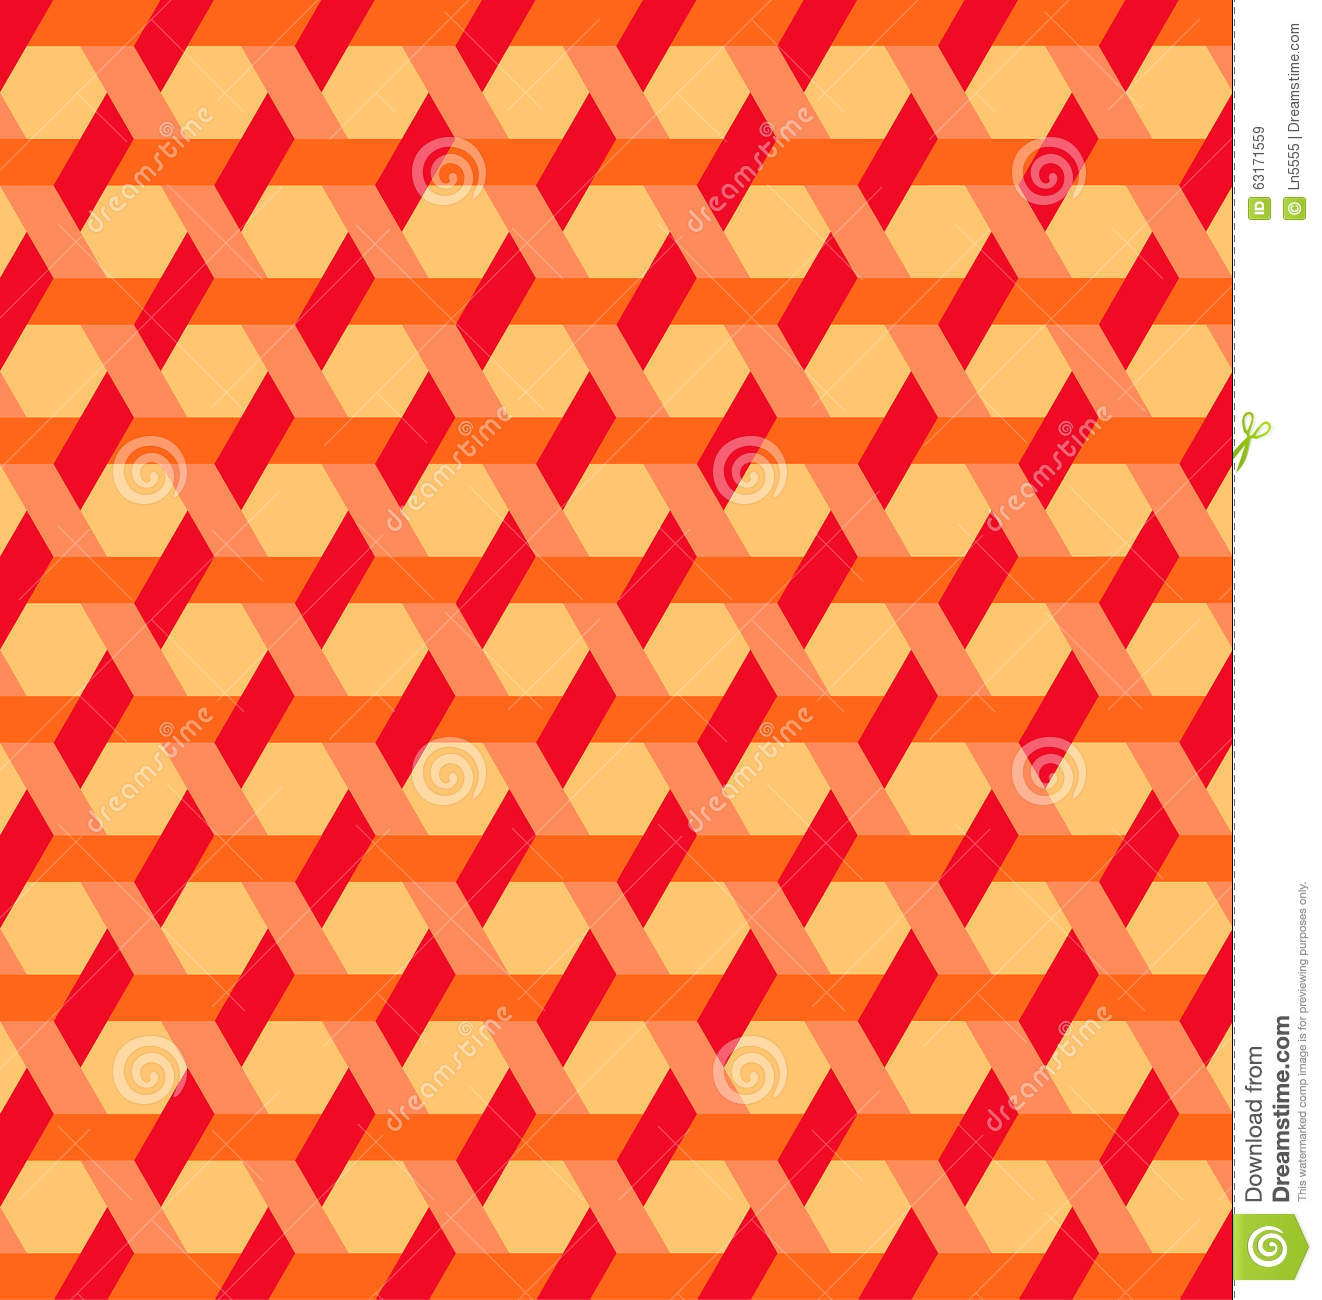 Shades Of Orange Modern Hexagon Shapes And Lines Background Of Red Orange And